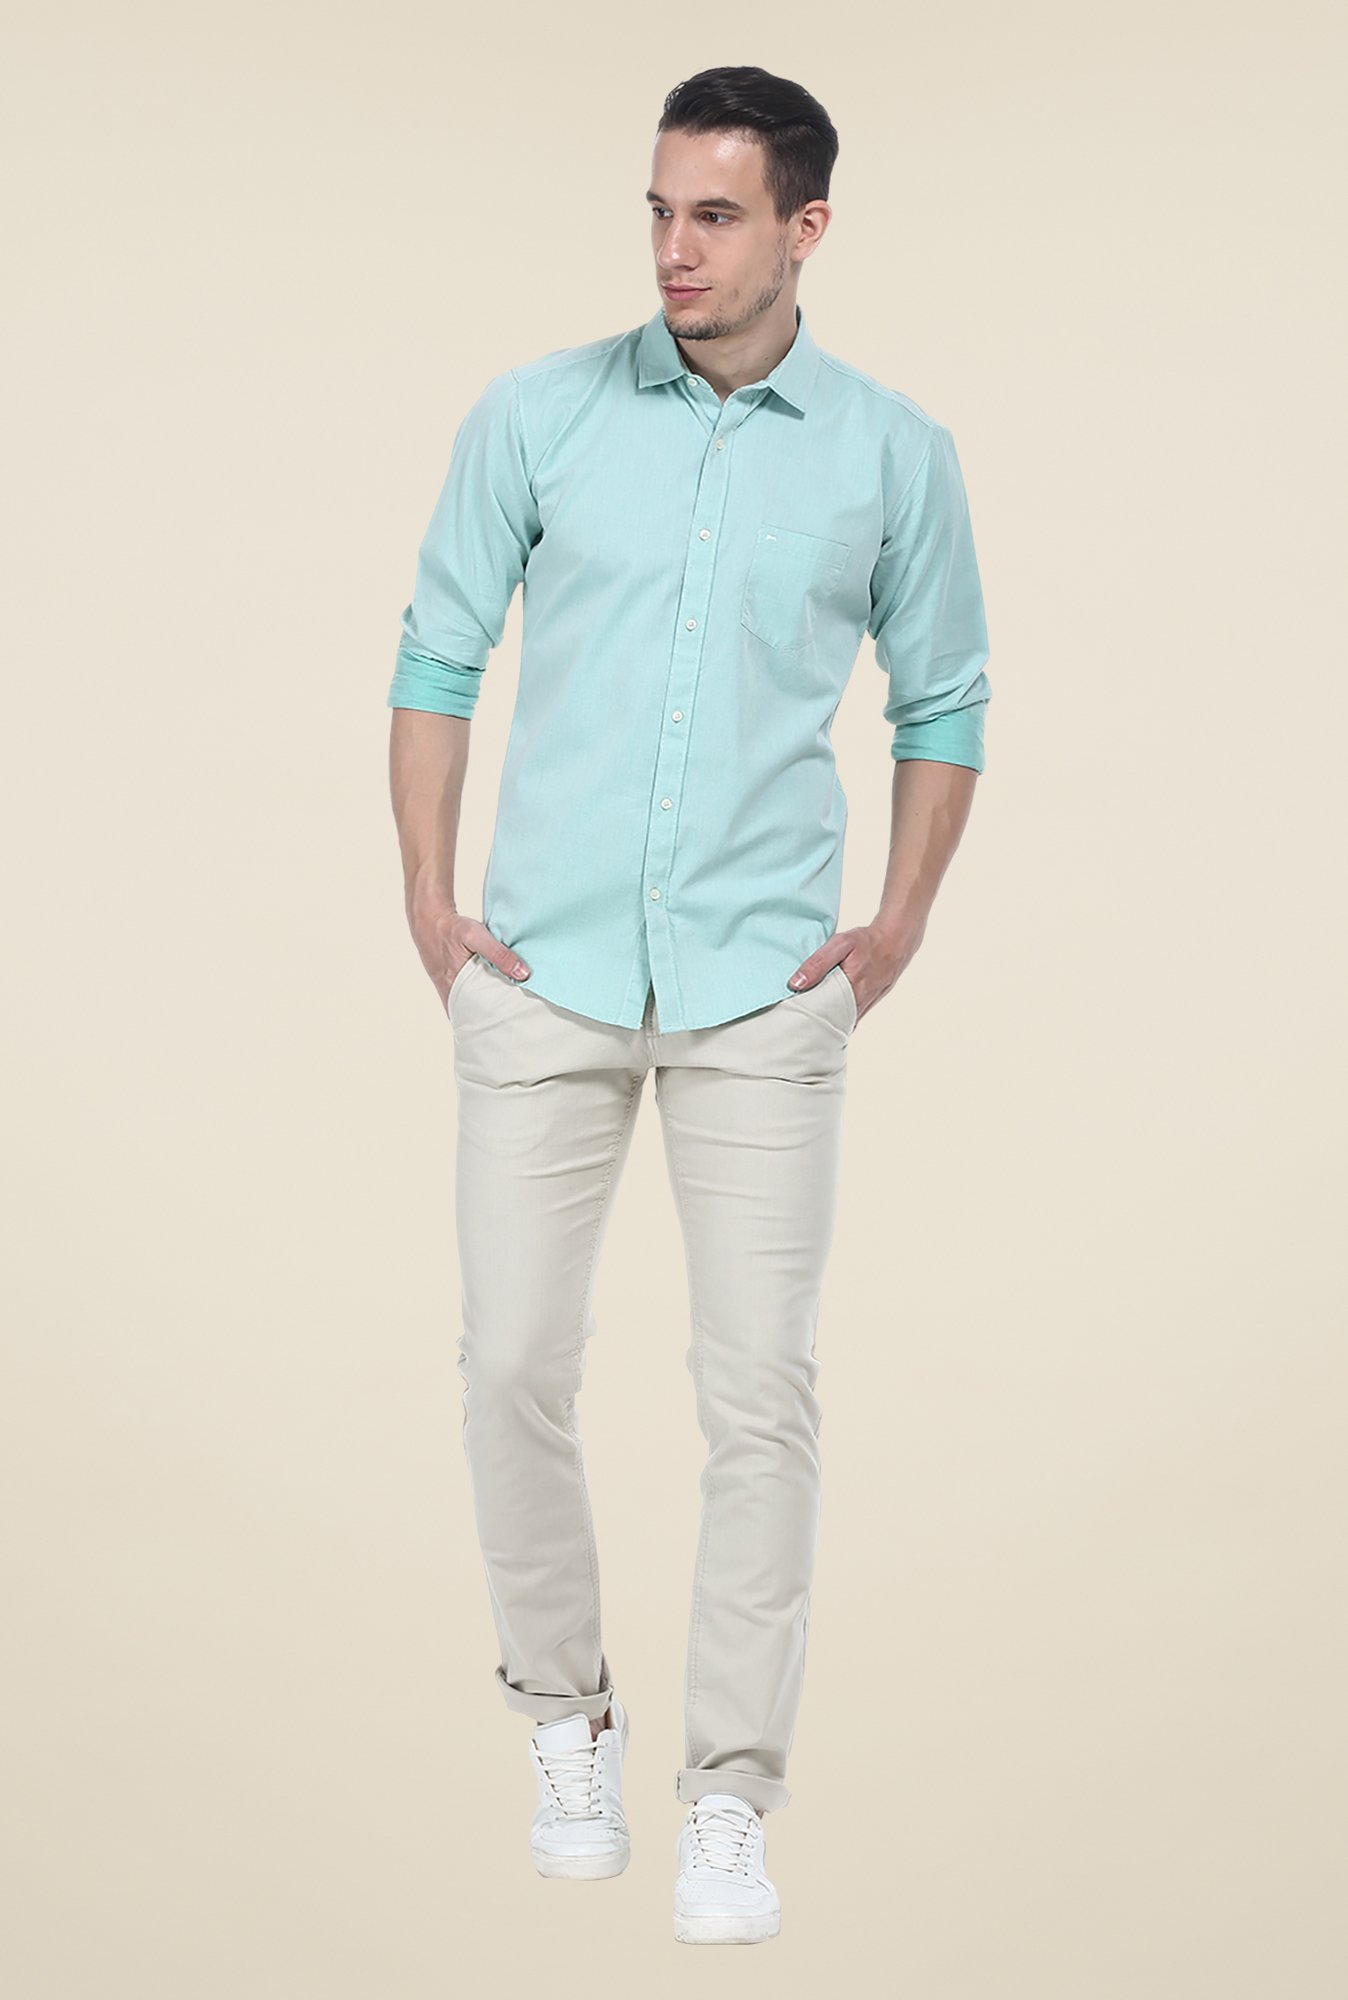 Basics Green Solid Full Sleeve Shirt